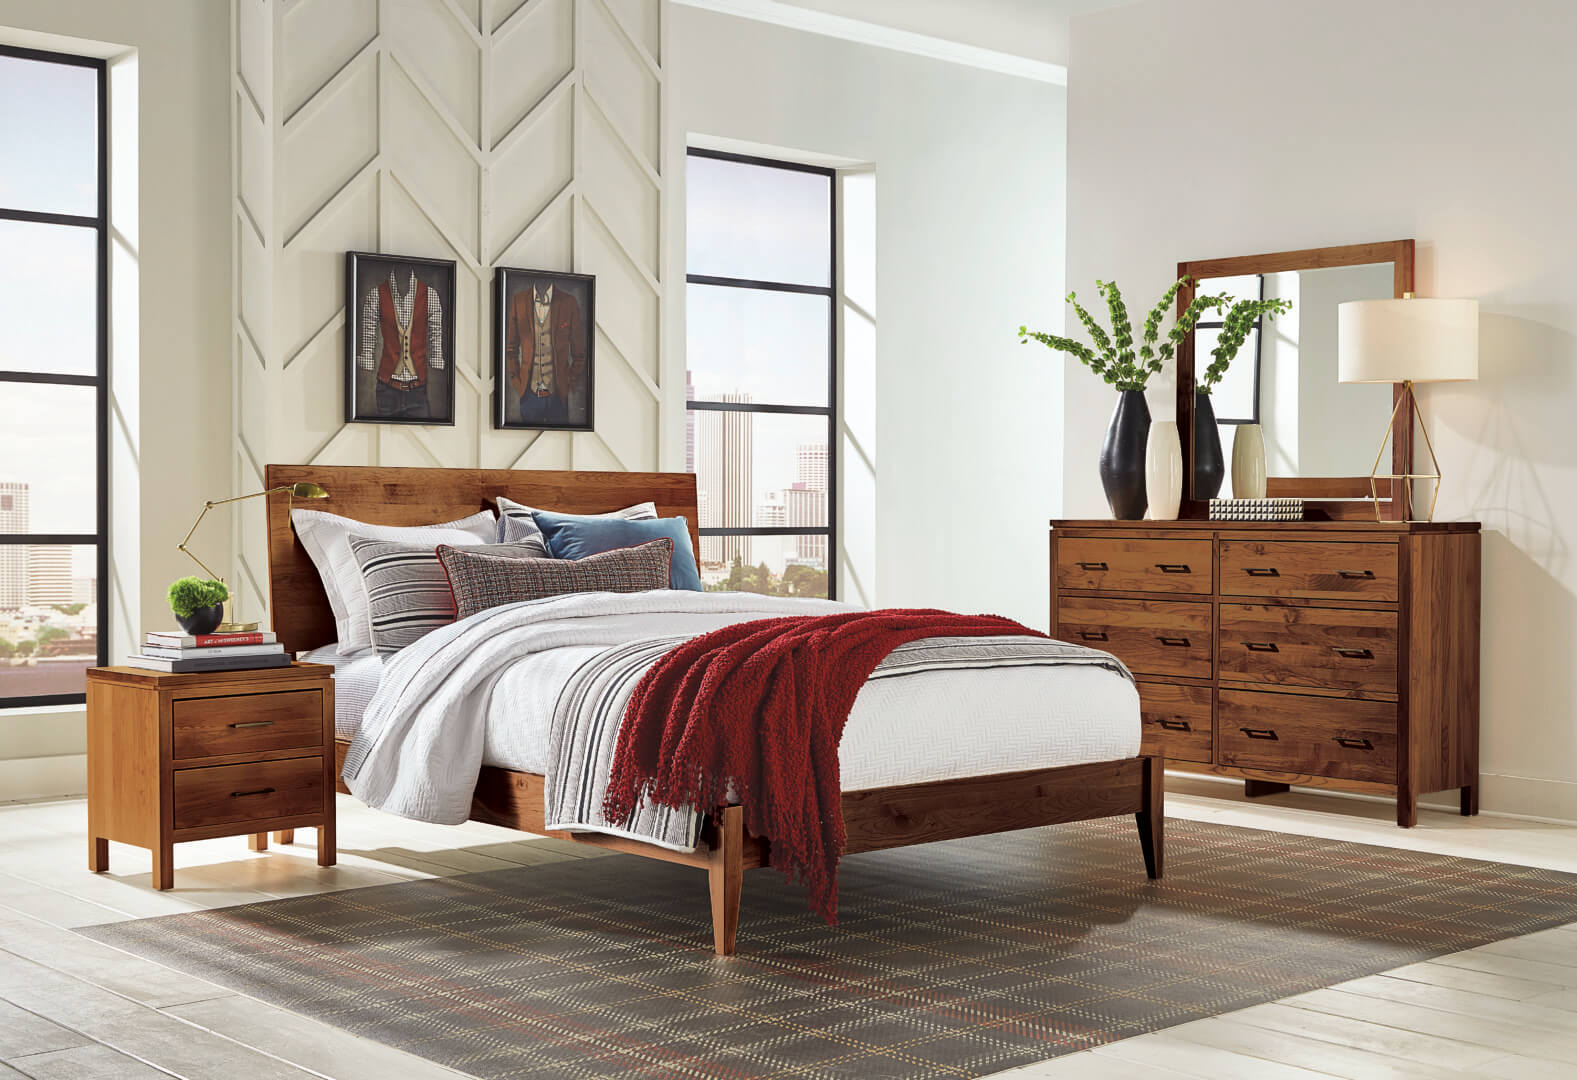 Https Www Unfinishedfurnitureofwilmington Com Product Alder Queen 2 West Platform Bed